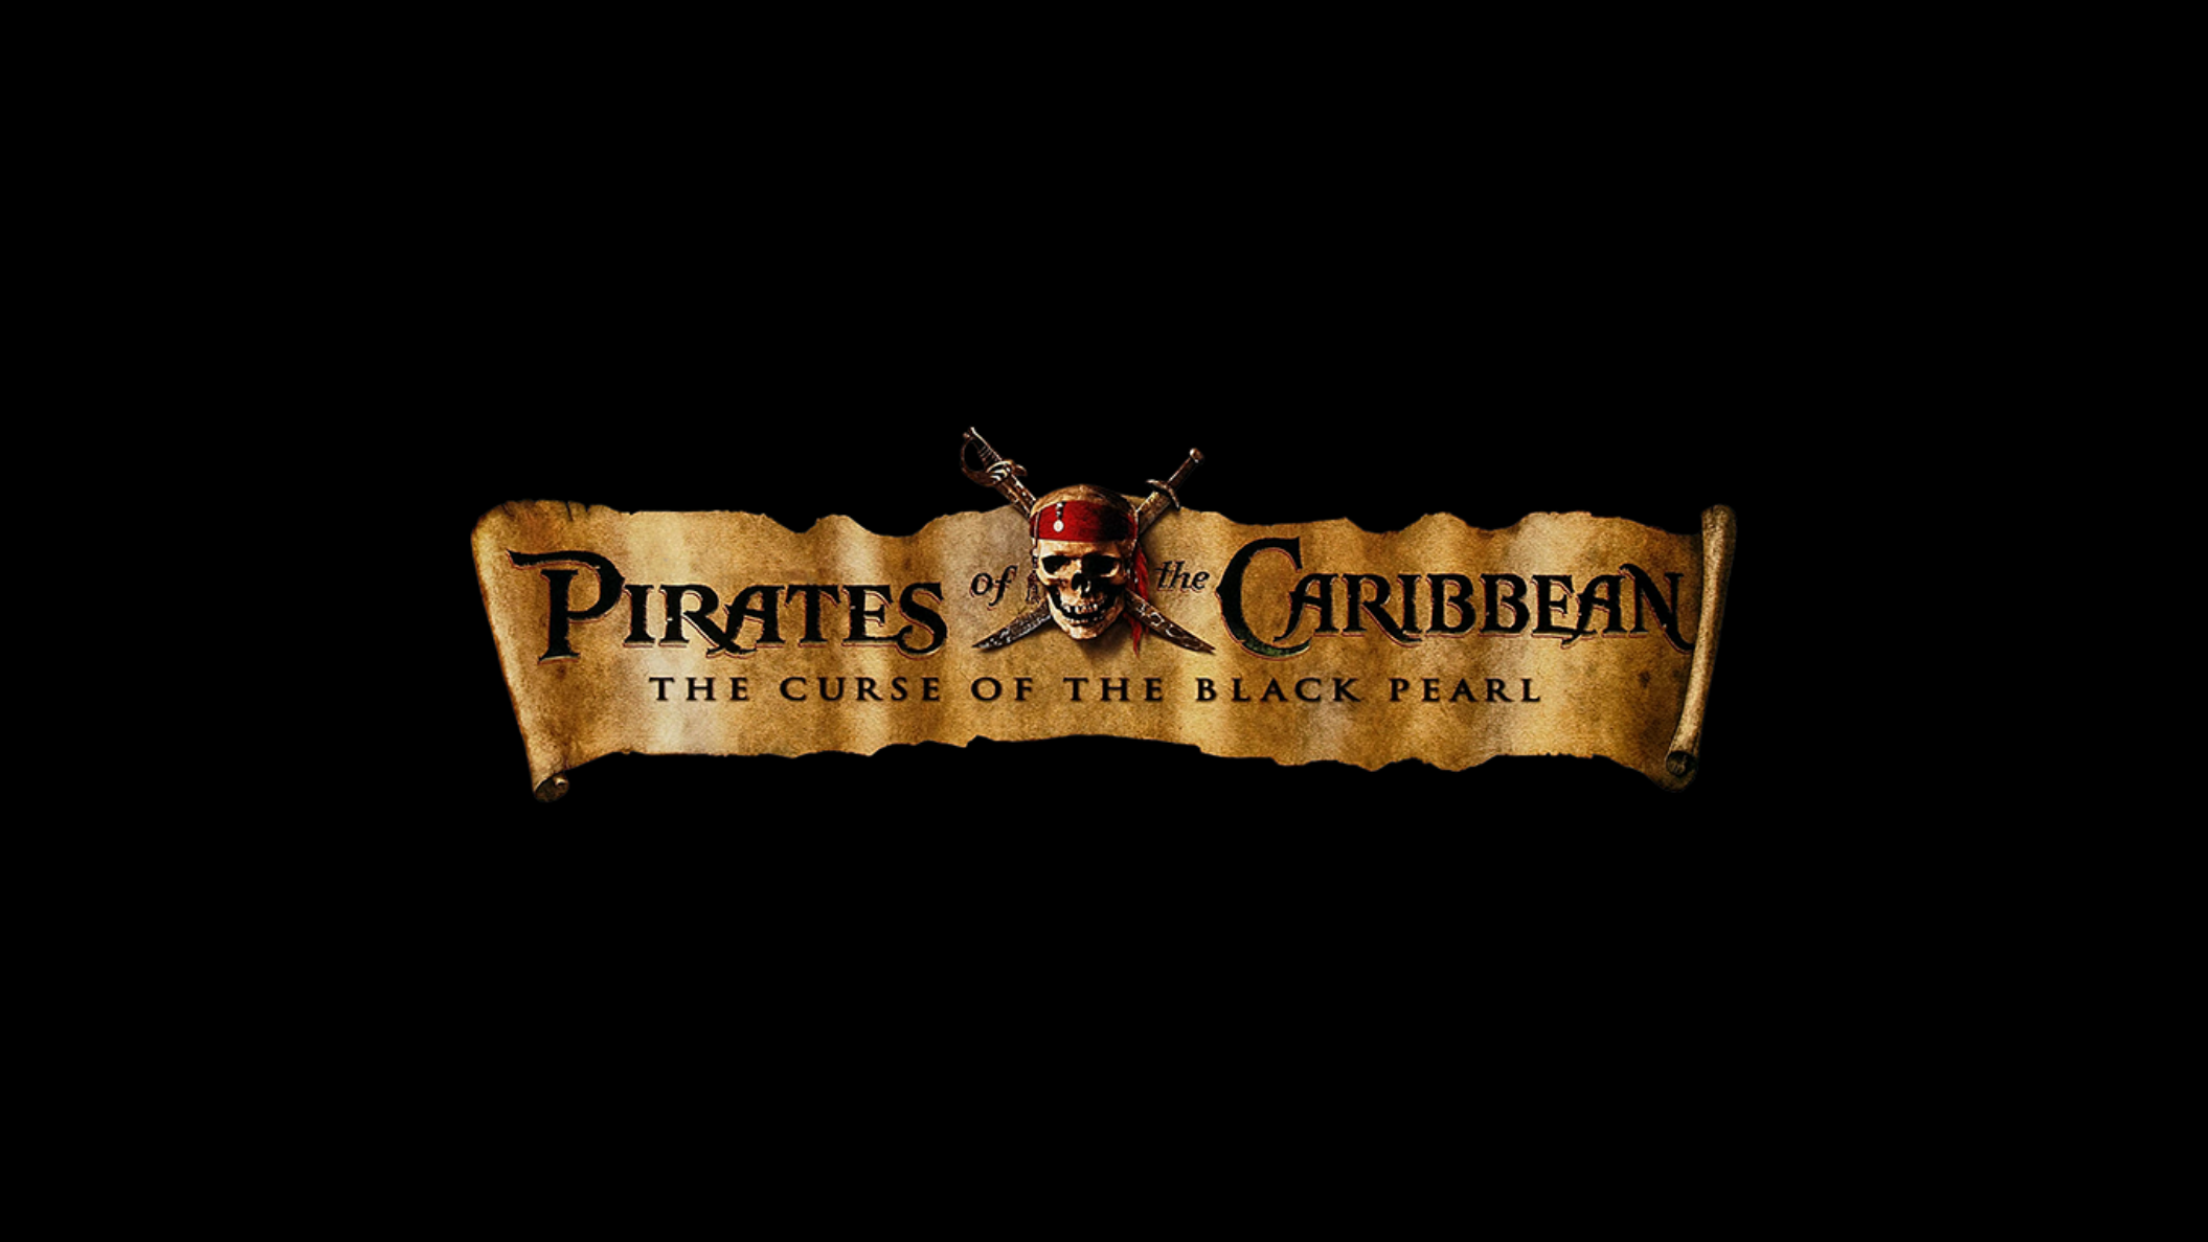 Pin By Theparademon14 On Pirates Of The Caribbean Pirates Of The Caribbean Pirate Life Pirates